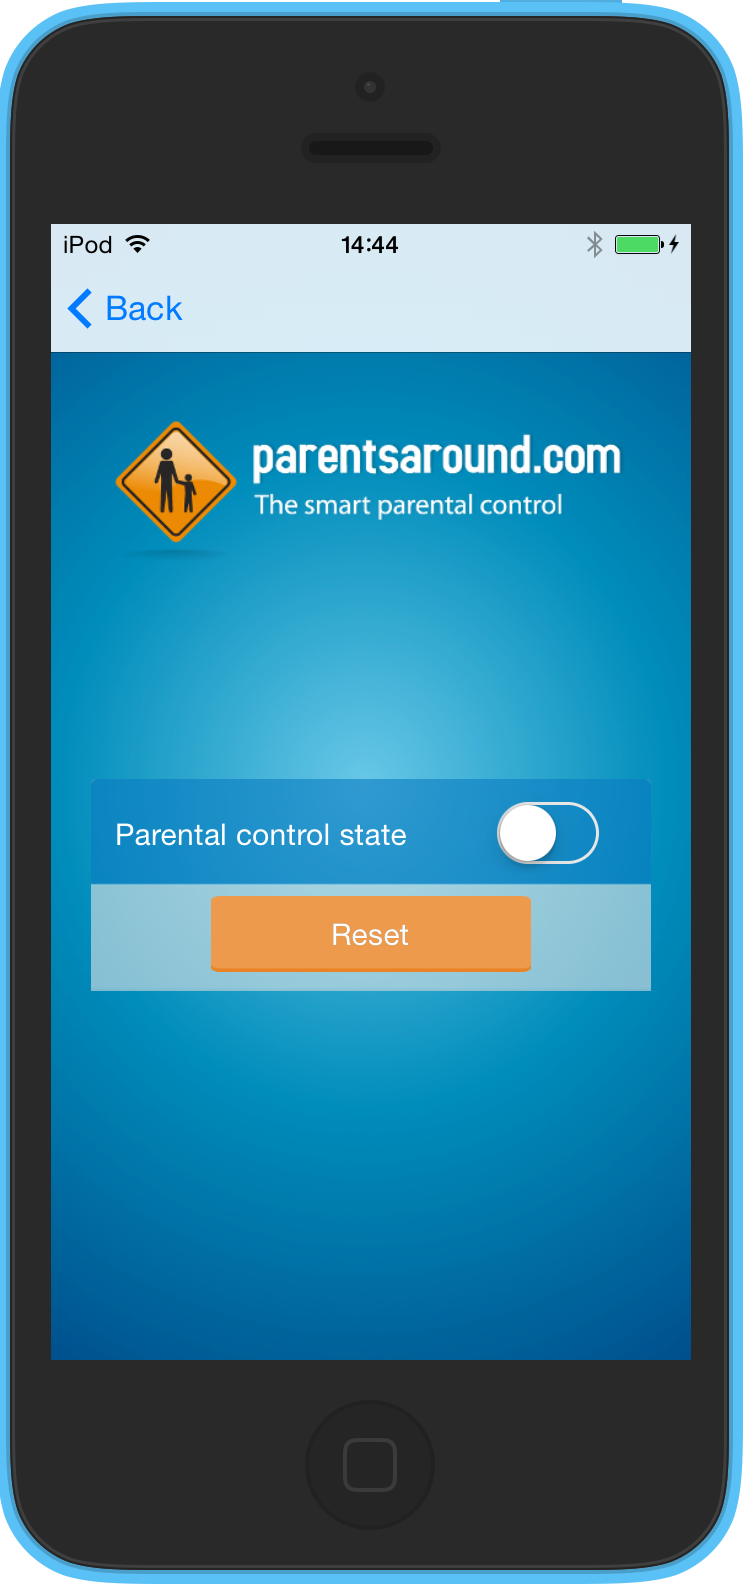 Ios app for parental control